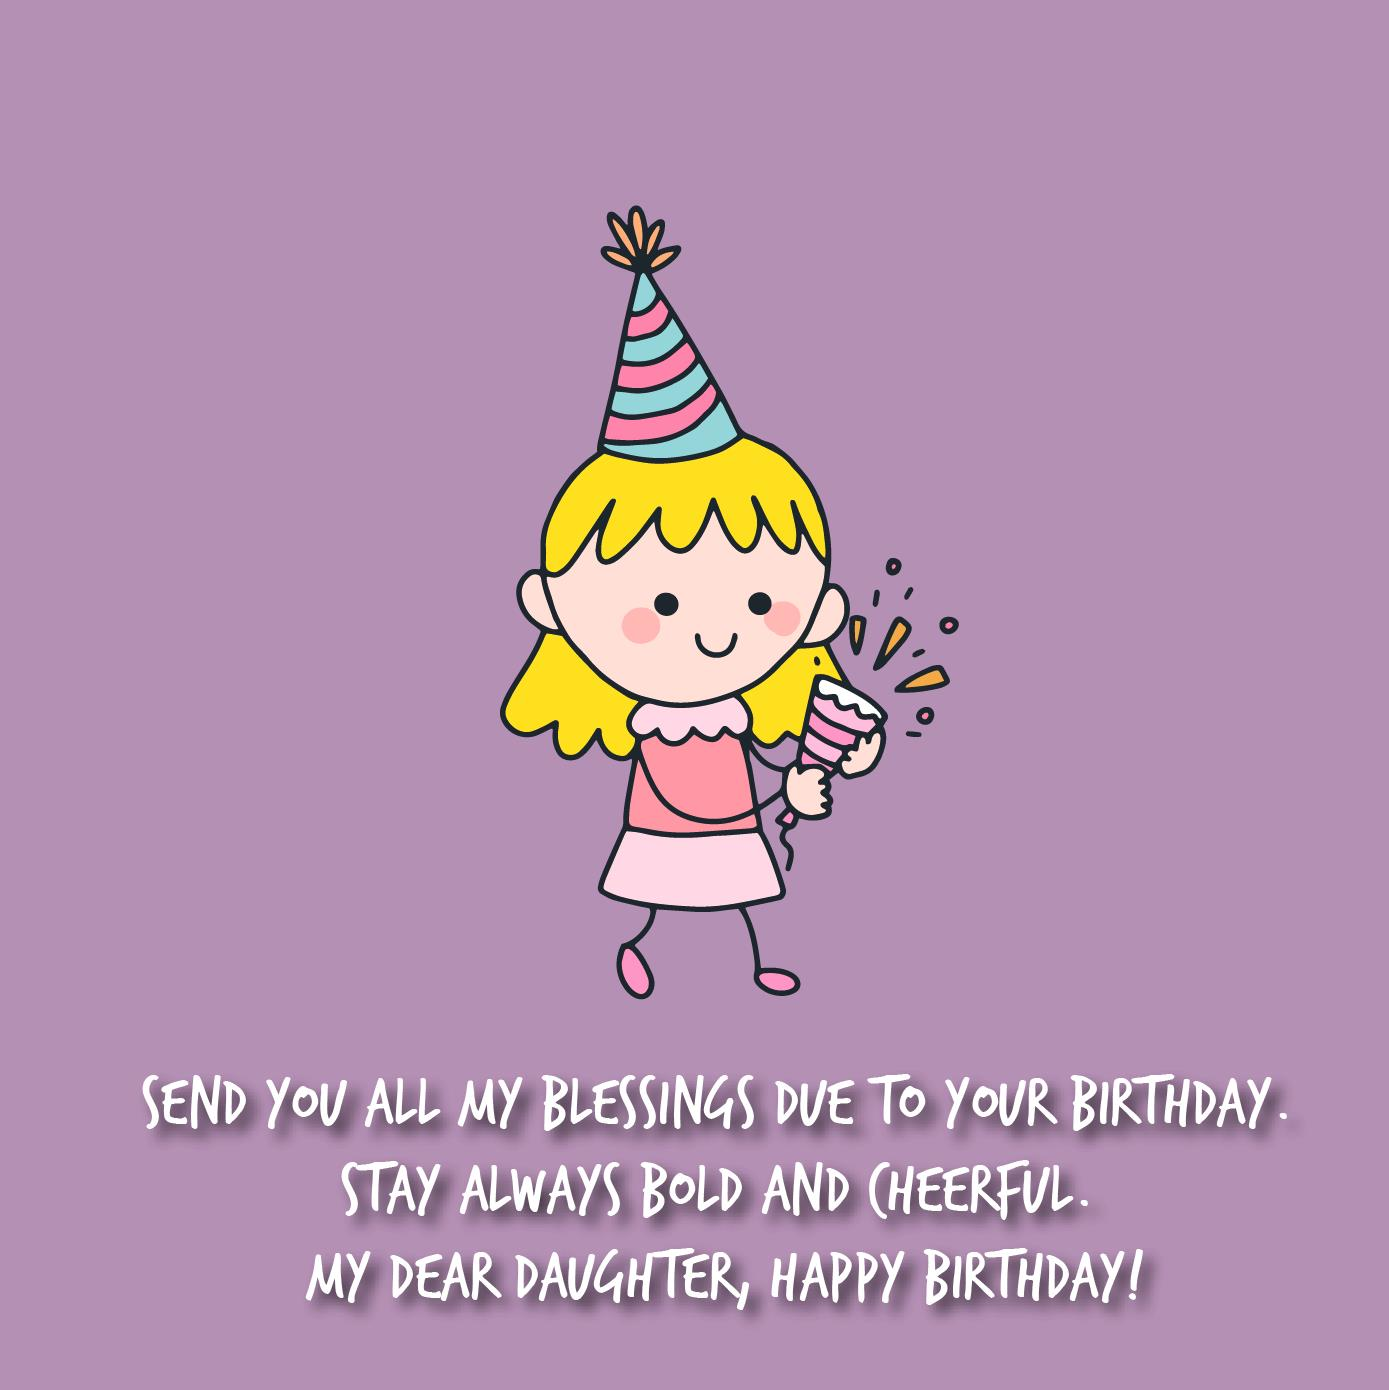 birthday-wishes-for-daughter-from-mom-04